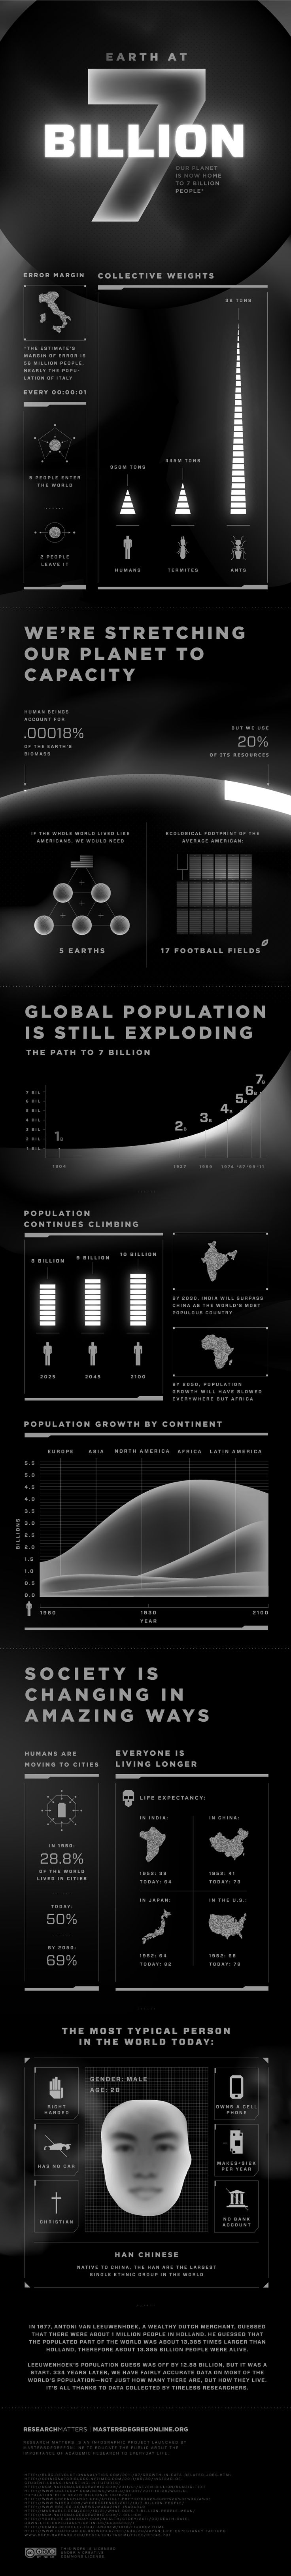 Crisis? Earth at Seven Billion [Infographic]